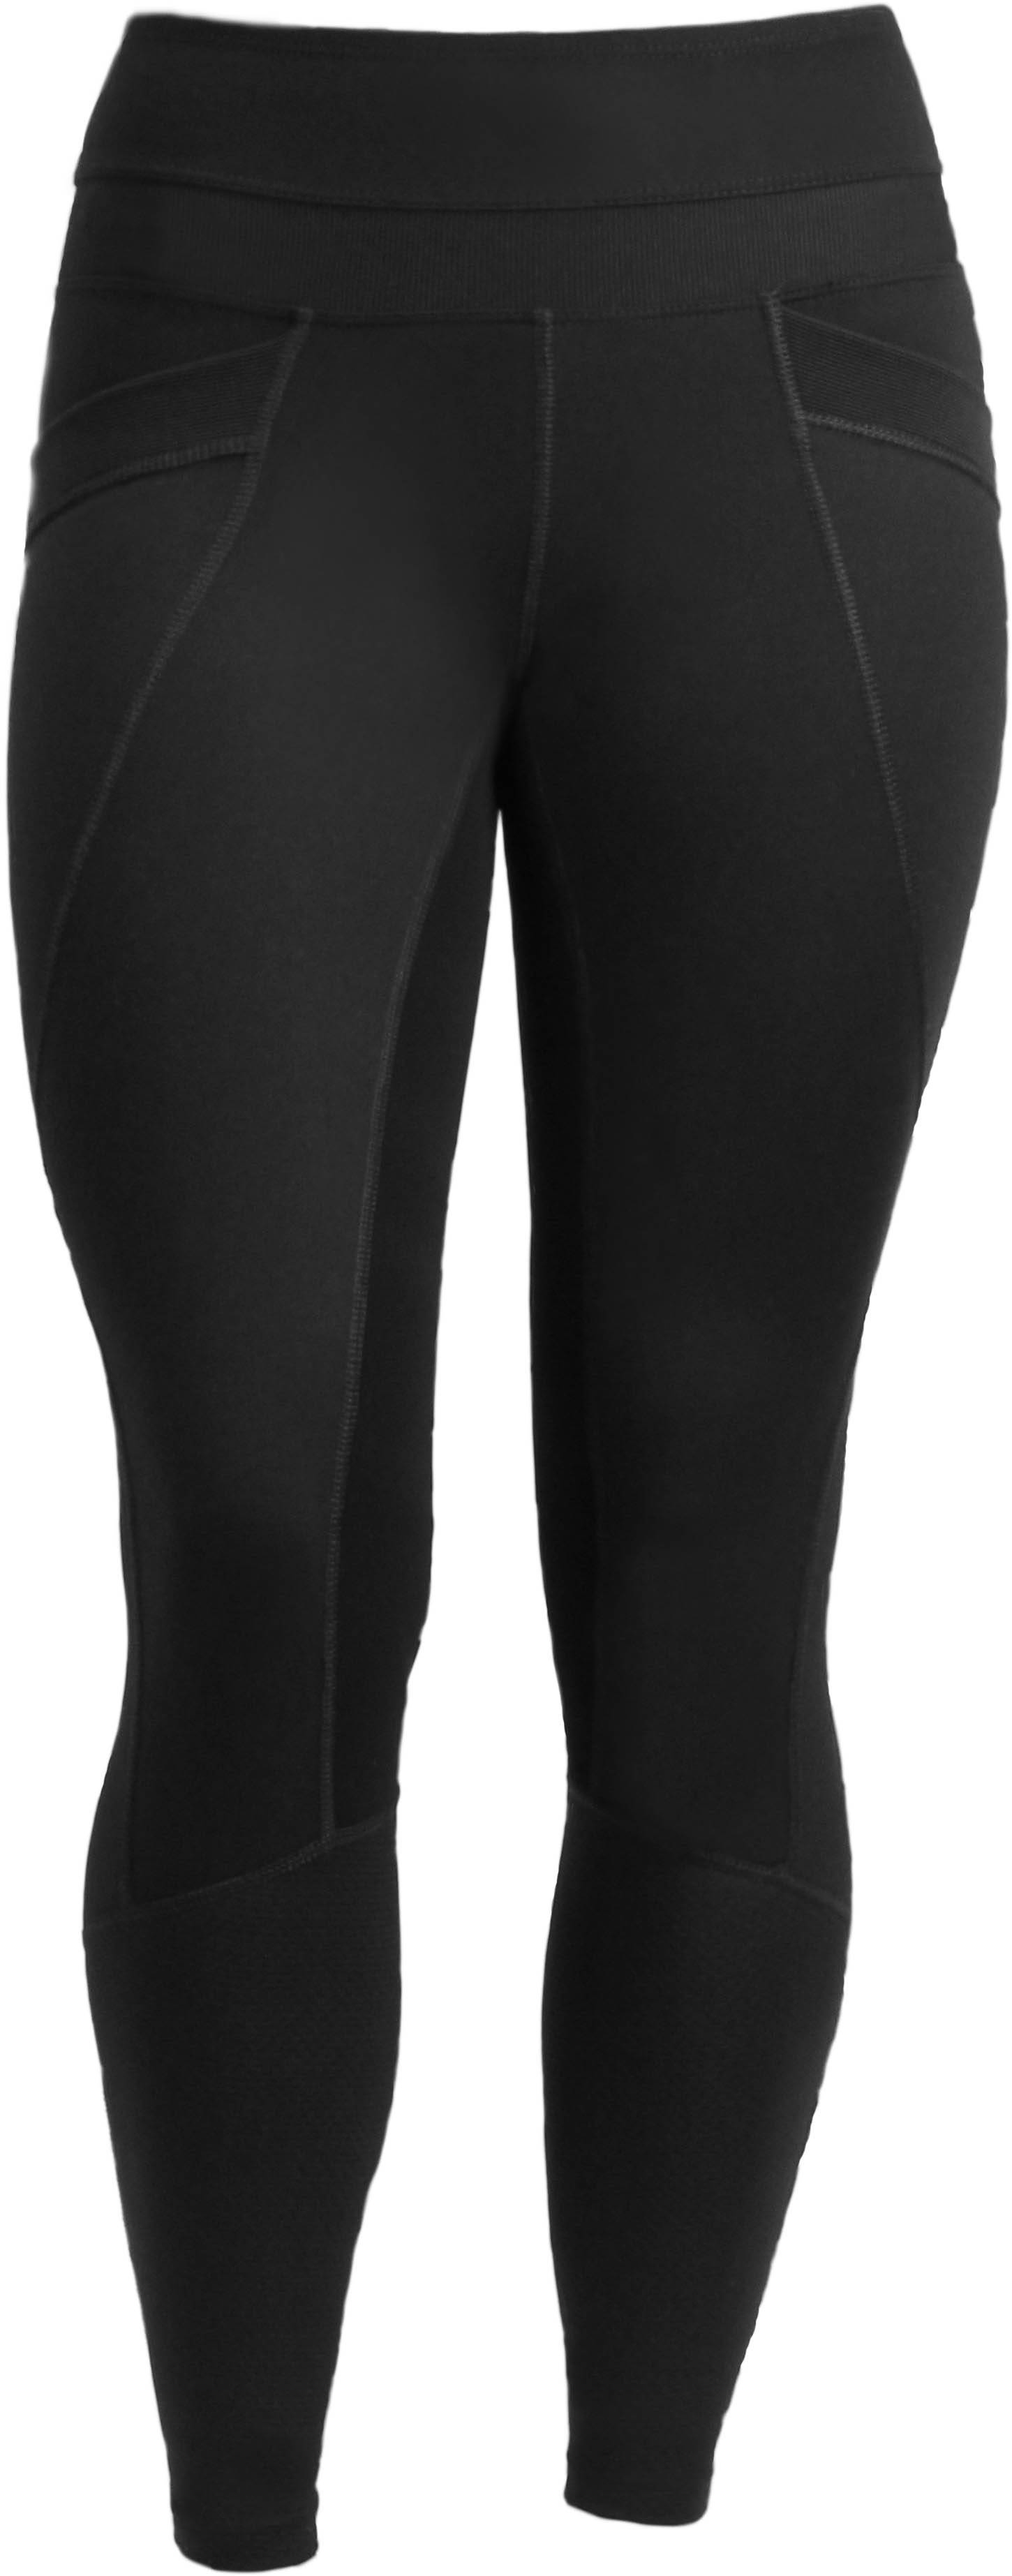 Irideon Synergy Full Seat Tights- Ladies